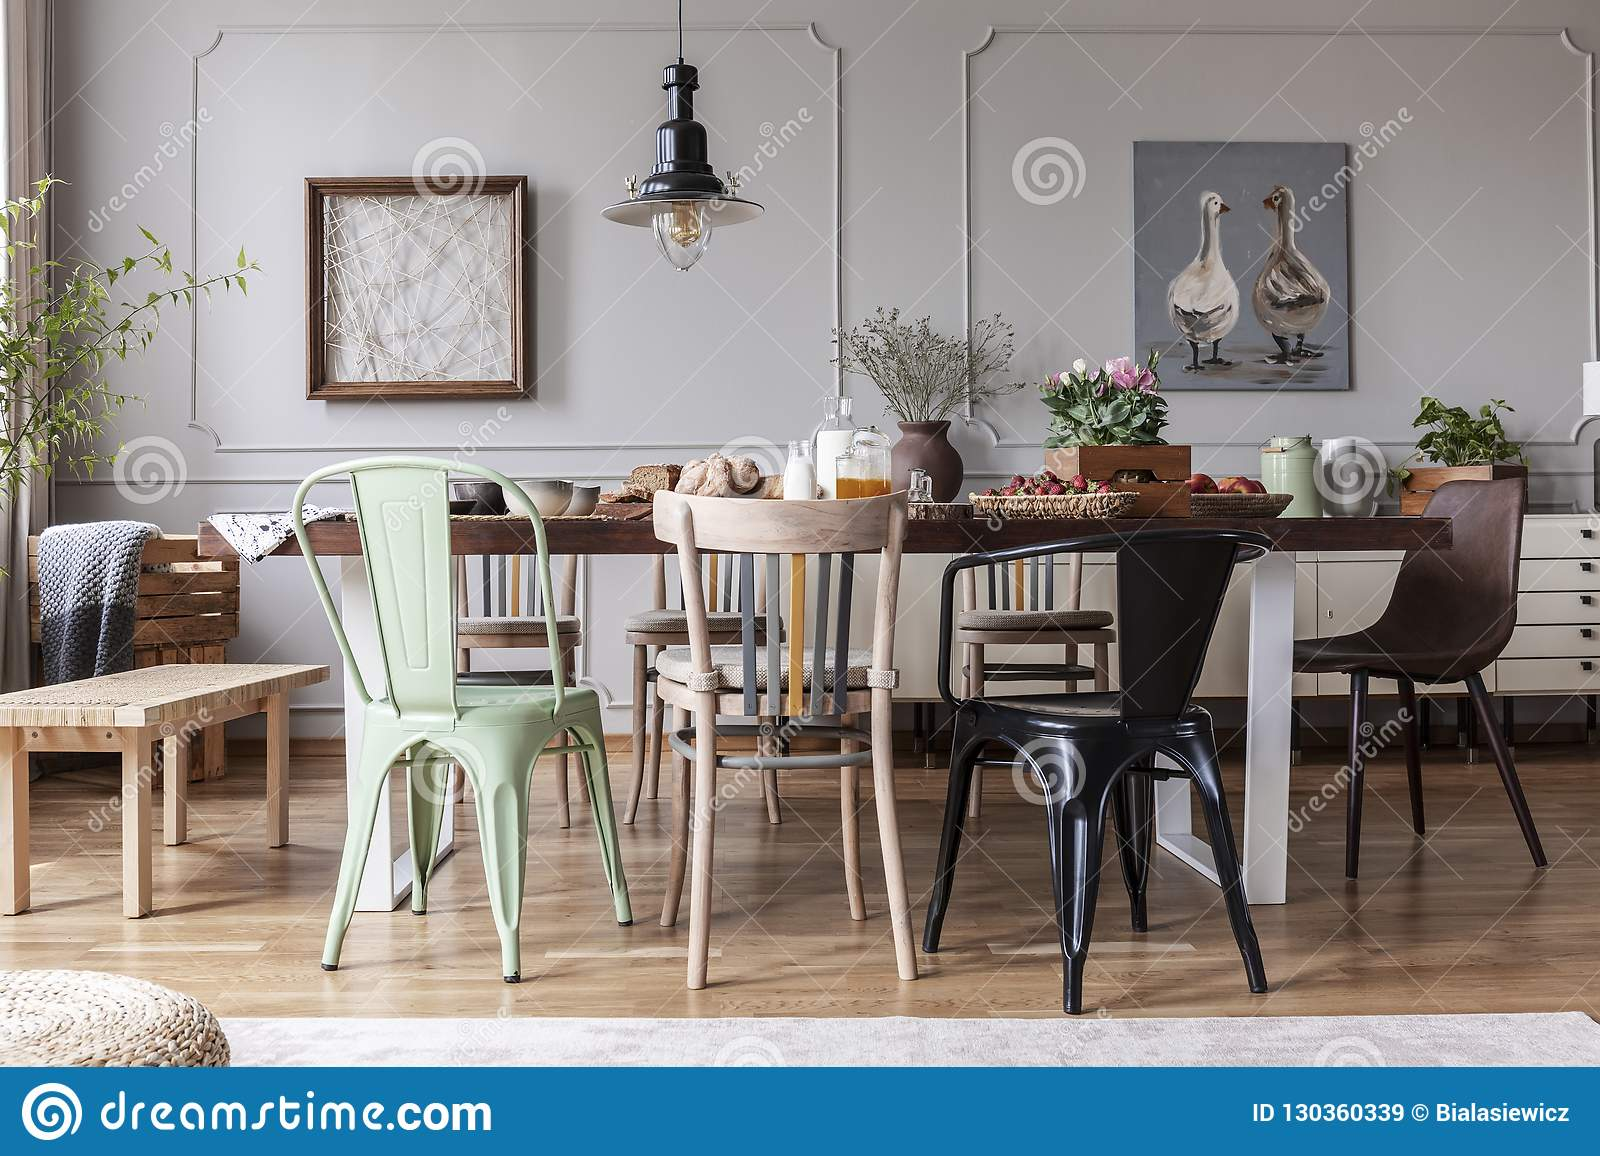 Real Photo Of An Eclectic Dining Room Interior With Various Chairs At The Table Lamp And Painting With Ducks Stock Image Image Of Molding Interior 130360339